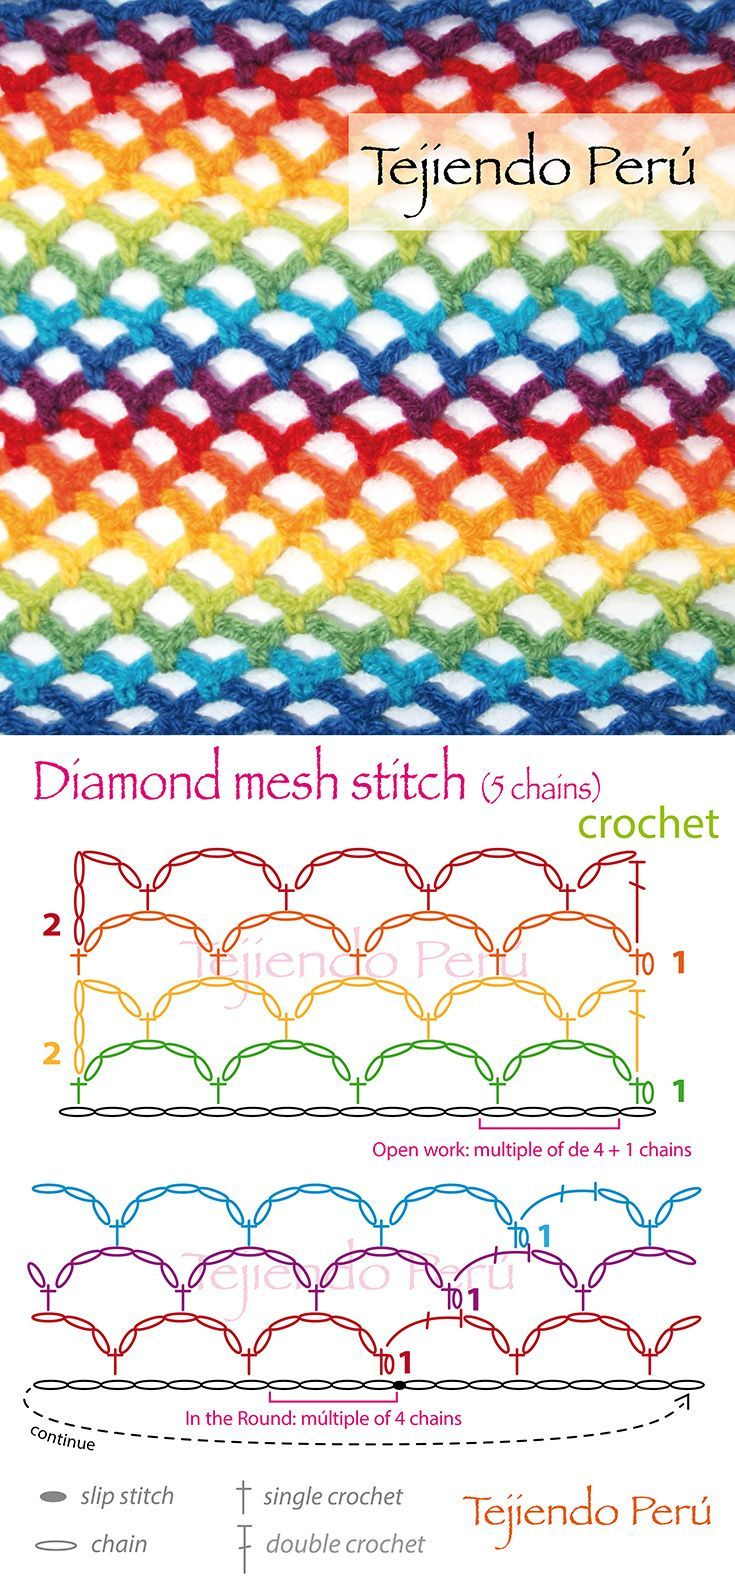 ergahandmade: Crochet Stitches + Diagrams